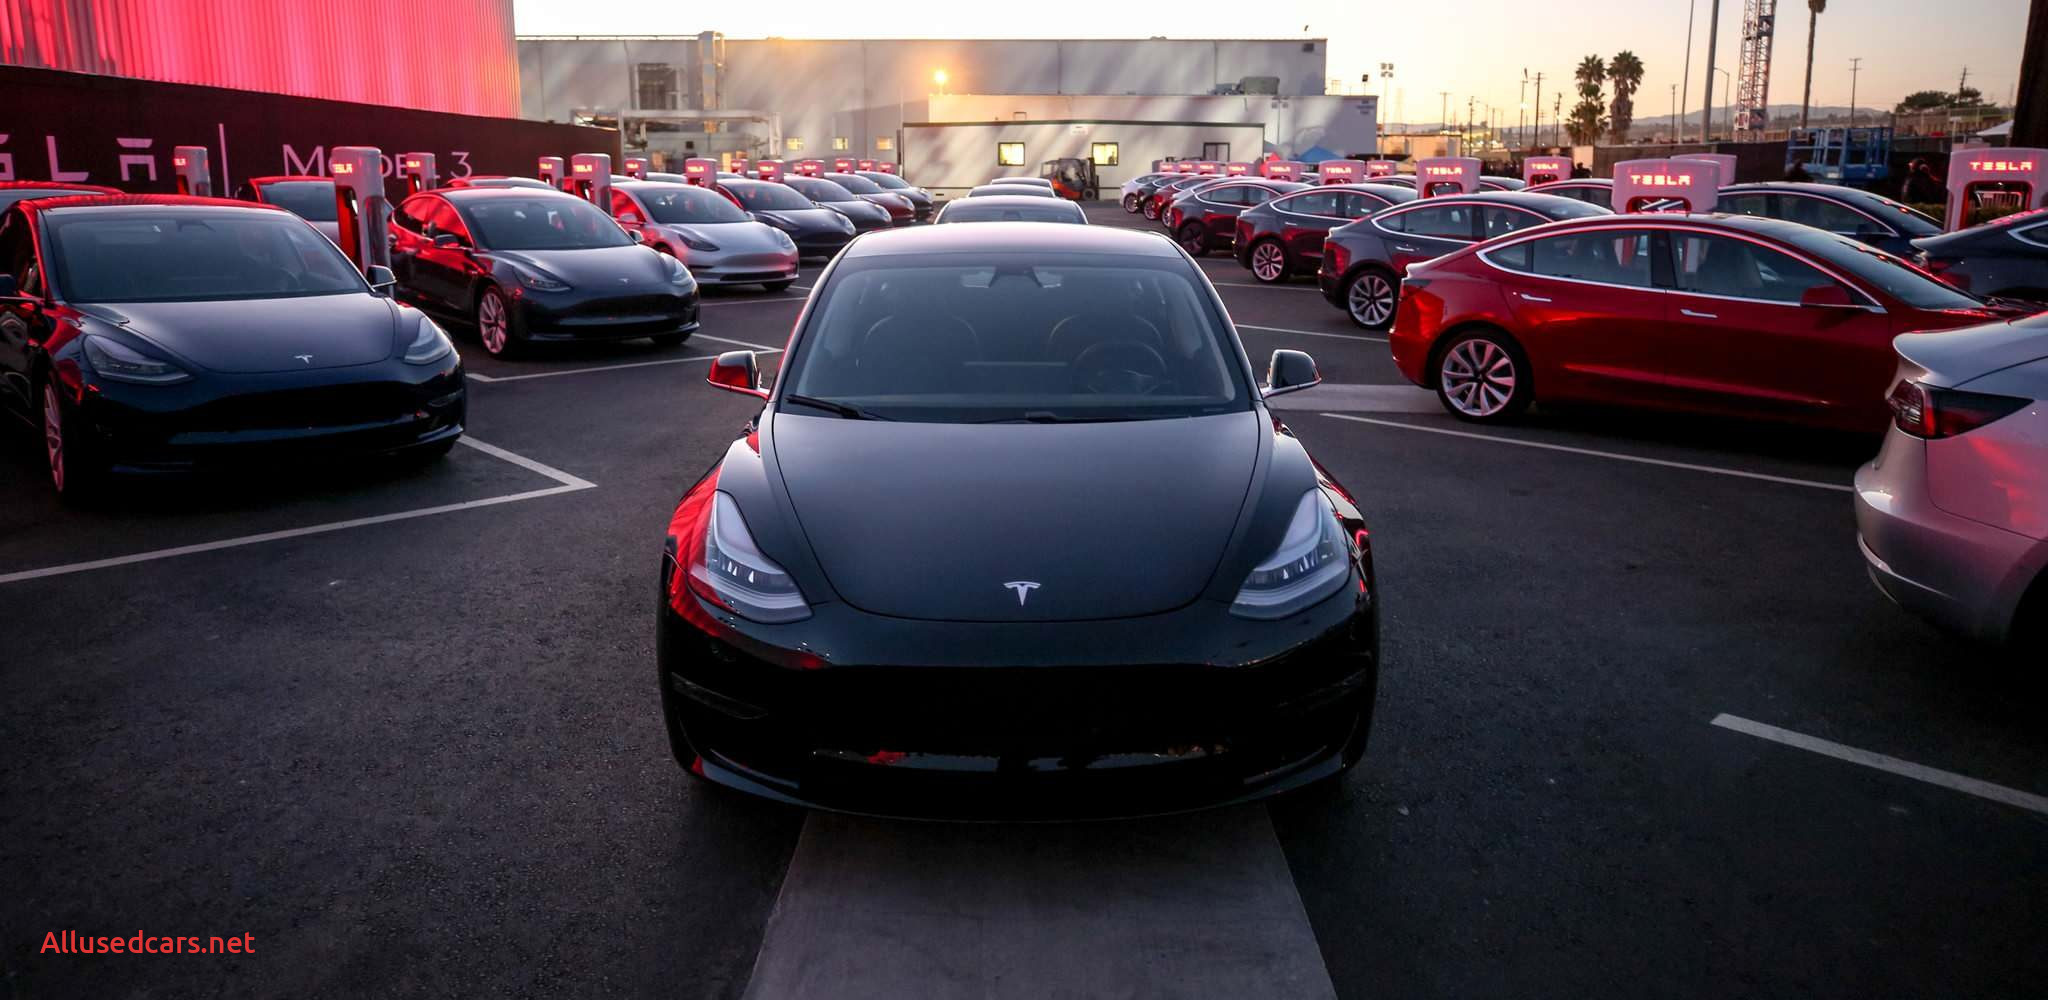 Rent A Tesla Nyc Awesome Tesla Pushes Delivery Timeline for New Standard Model 3